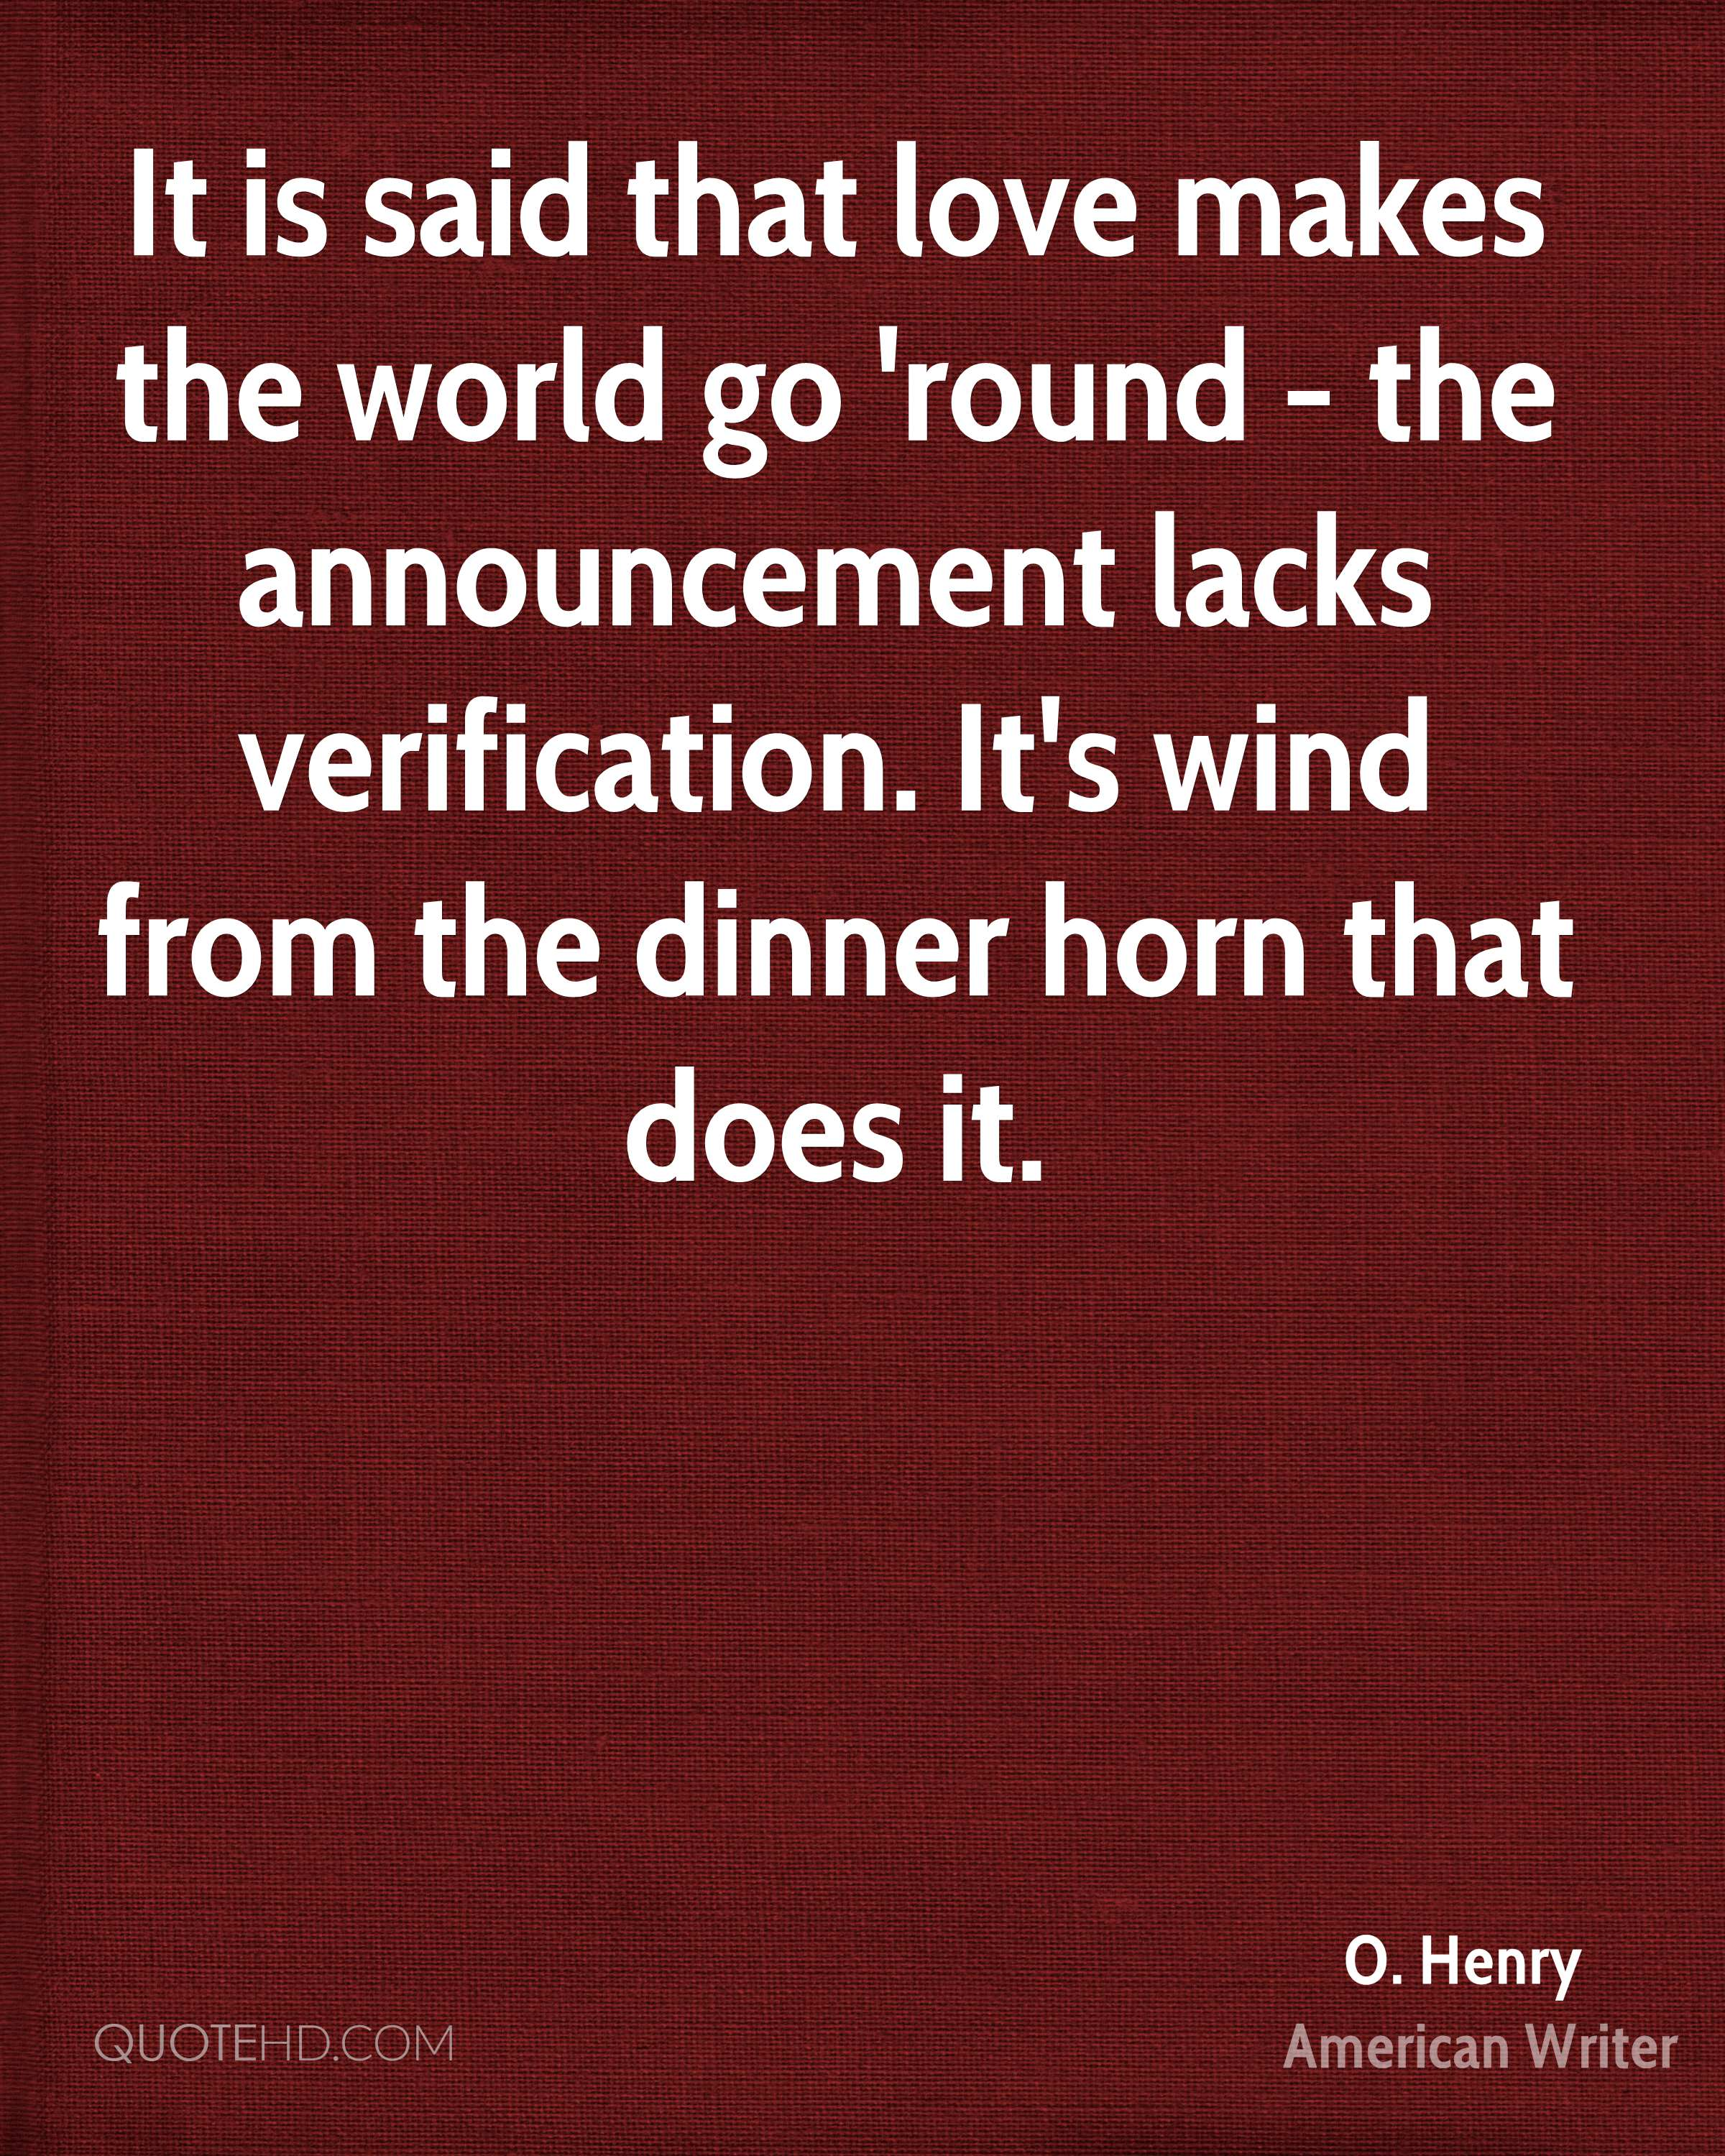 It is said that love makes the world go 'round - the announcement lacks verification. It's wind from the dinner horn that does it.